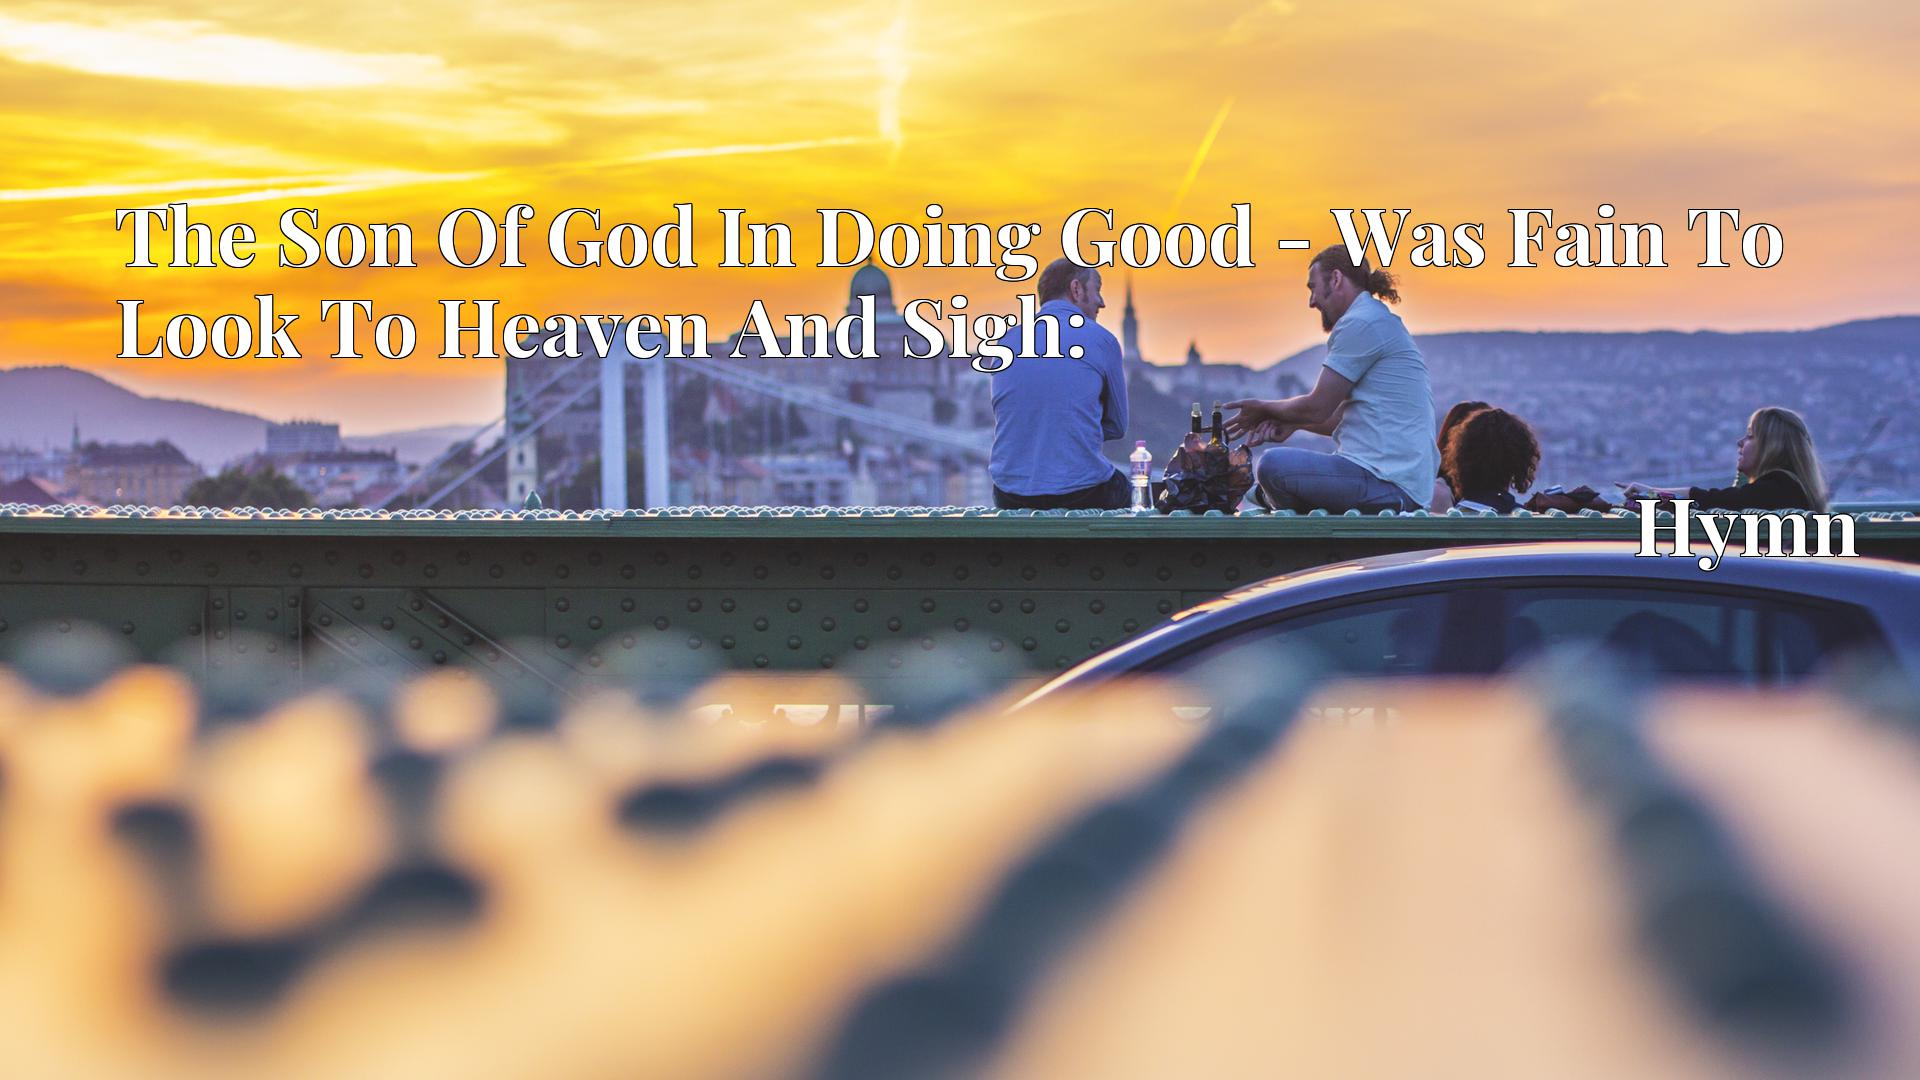 The Son Of God In Doing Good - Was Fain To Look To Heaven And Sigh: Hymn